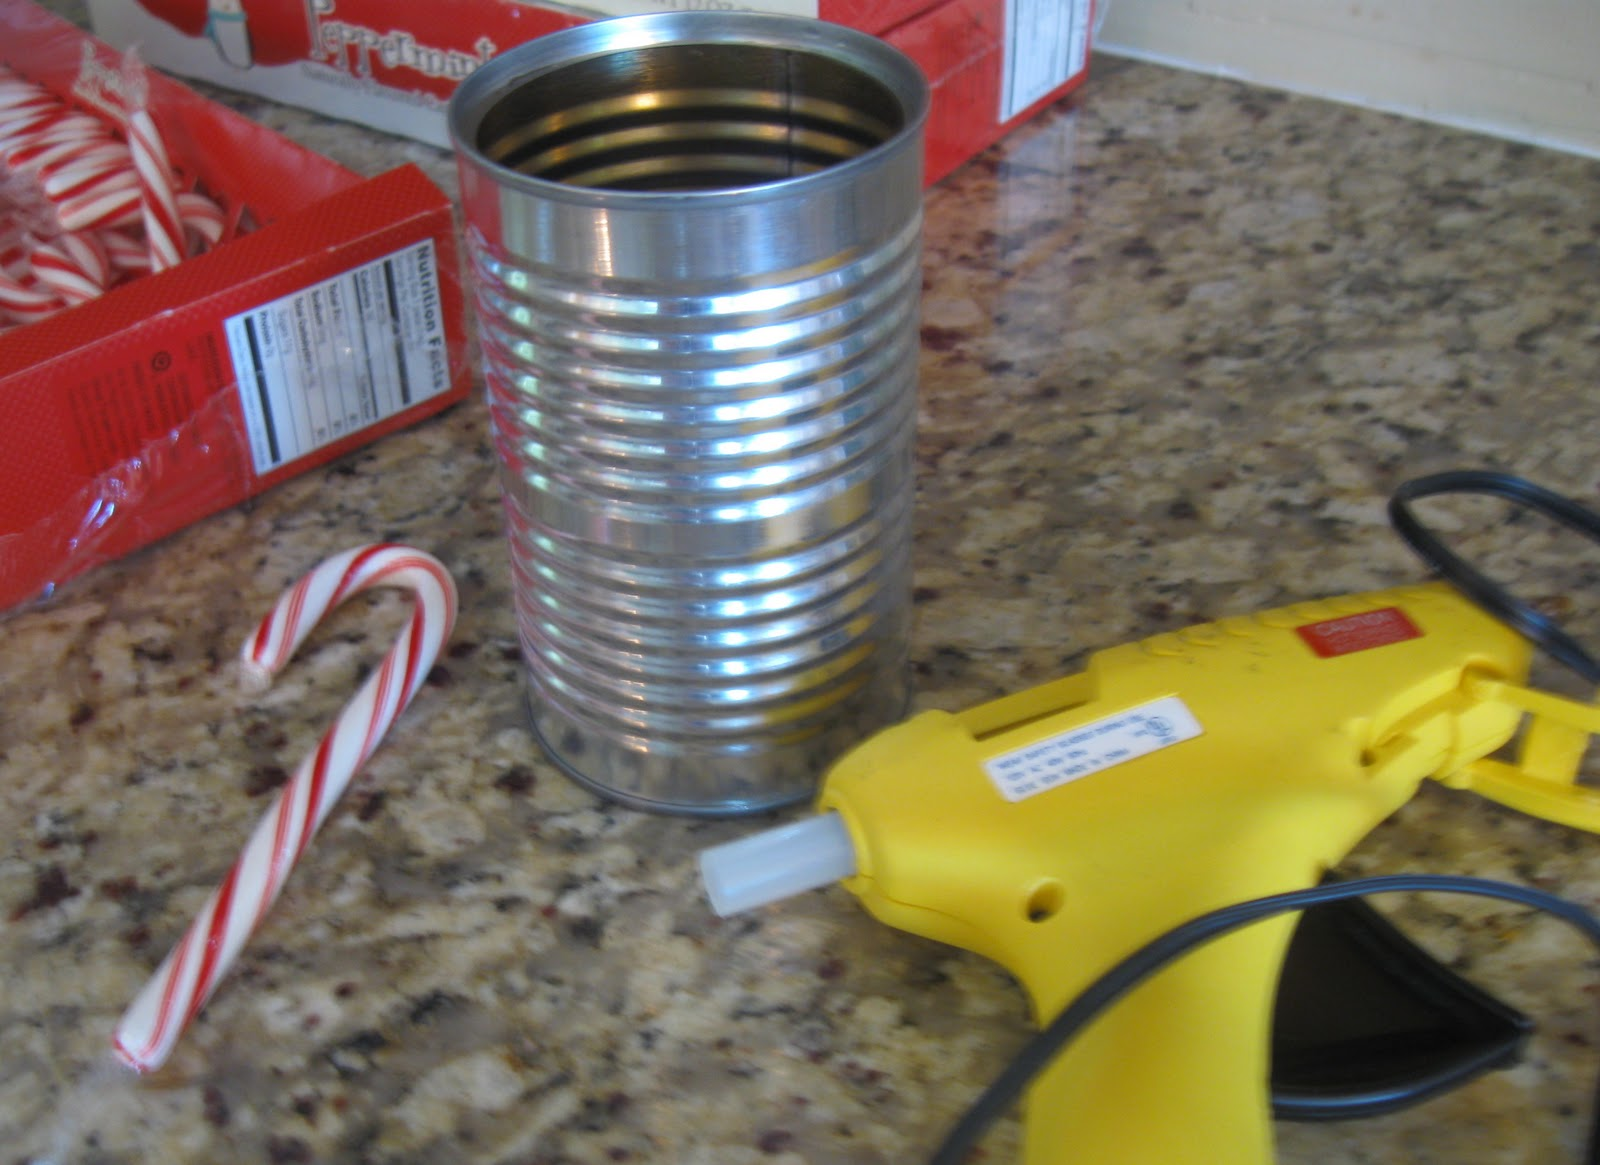 for this diy candy cane vase project you need an empty aluminum can